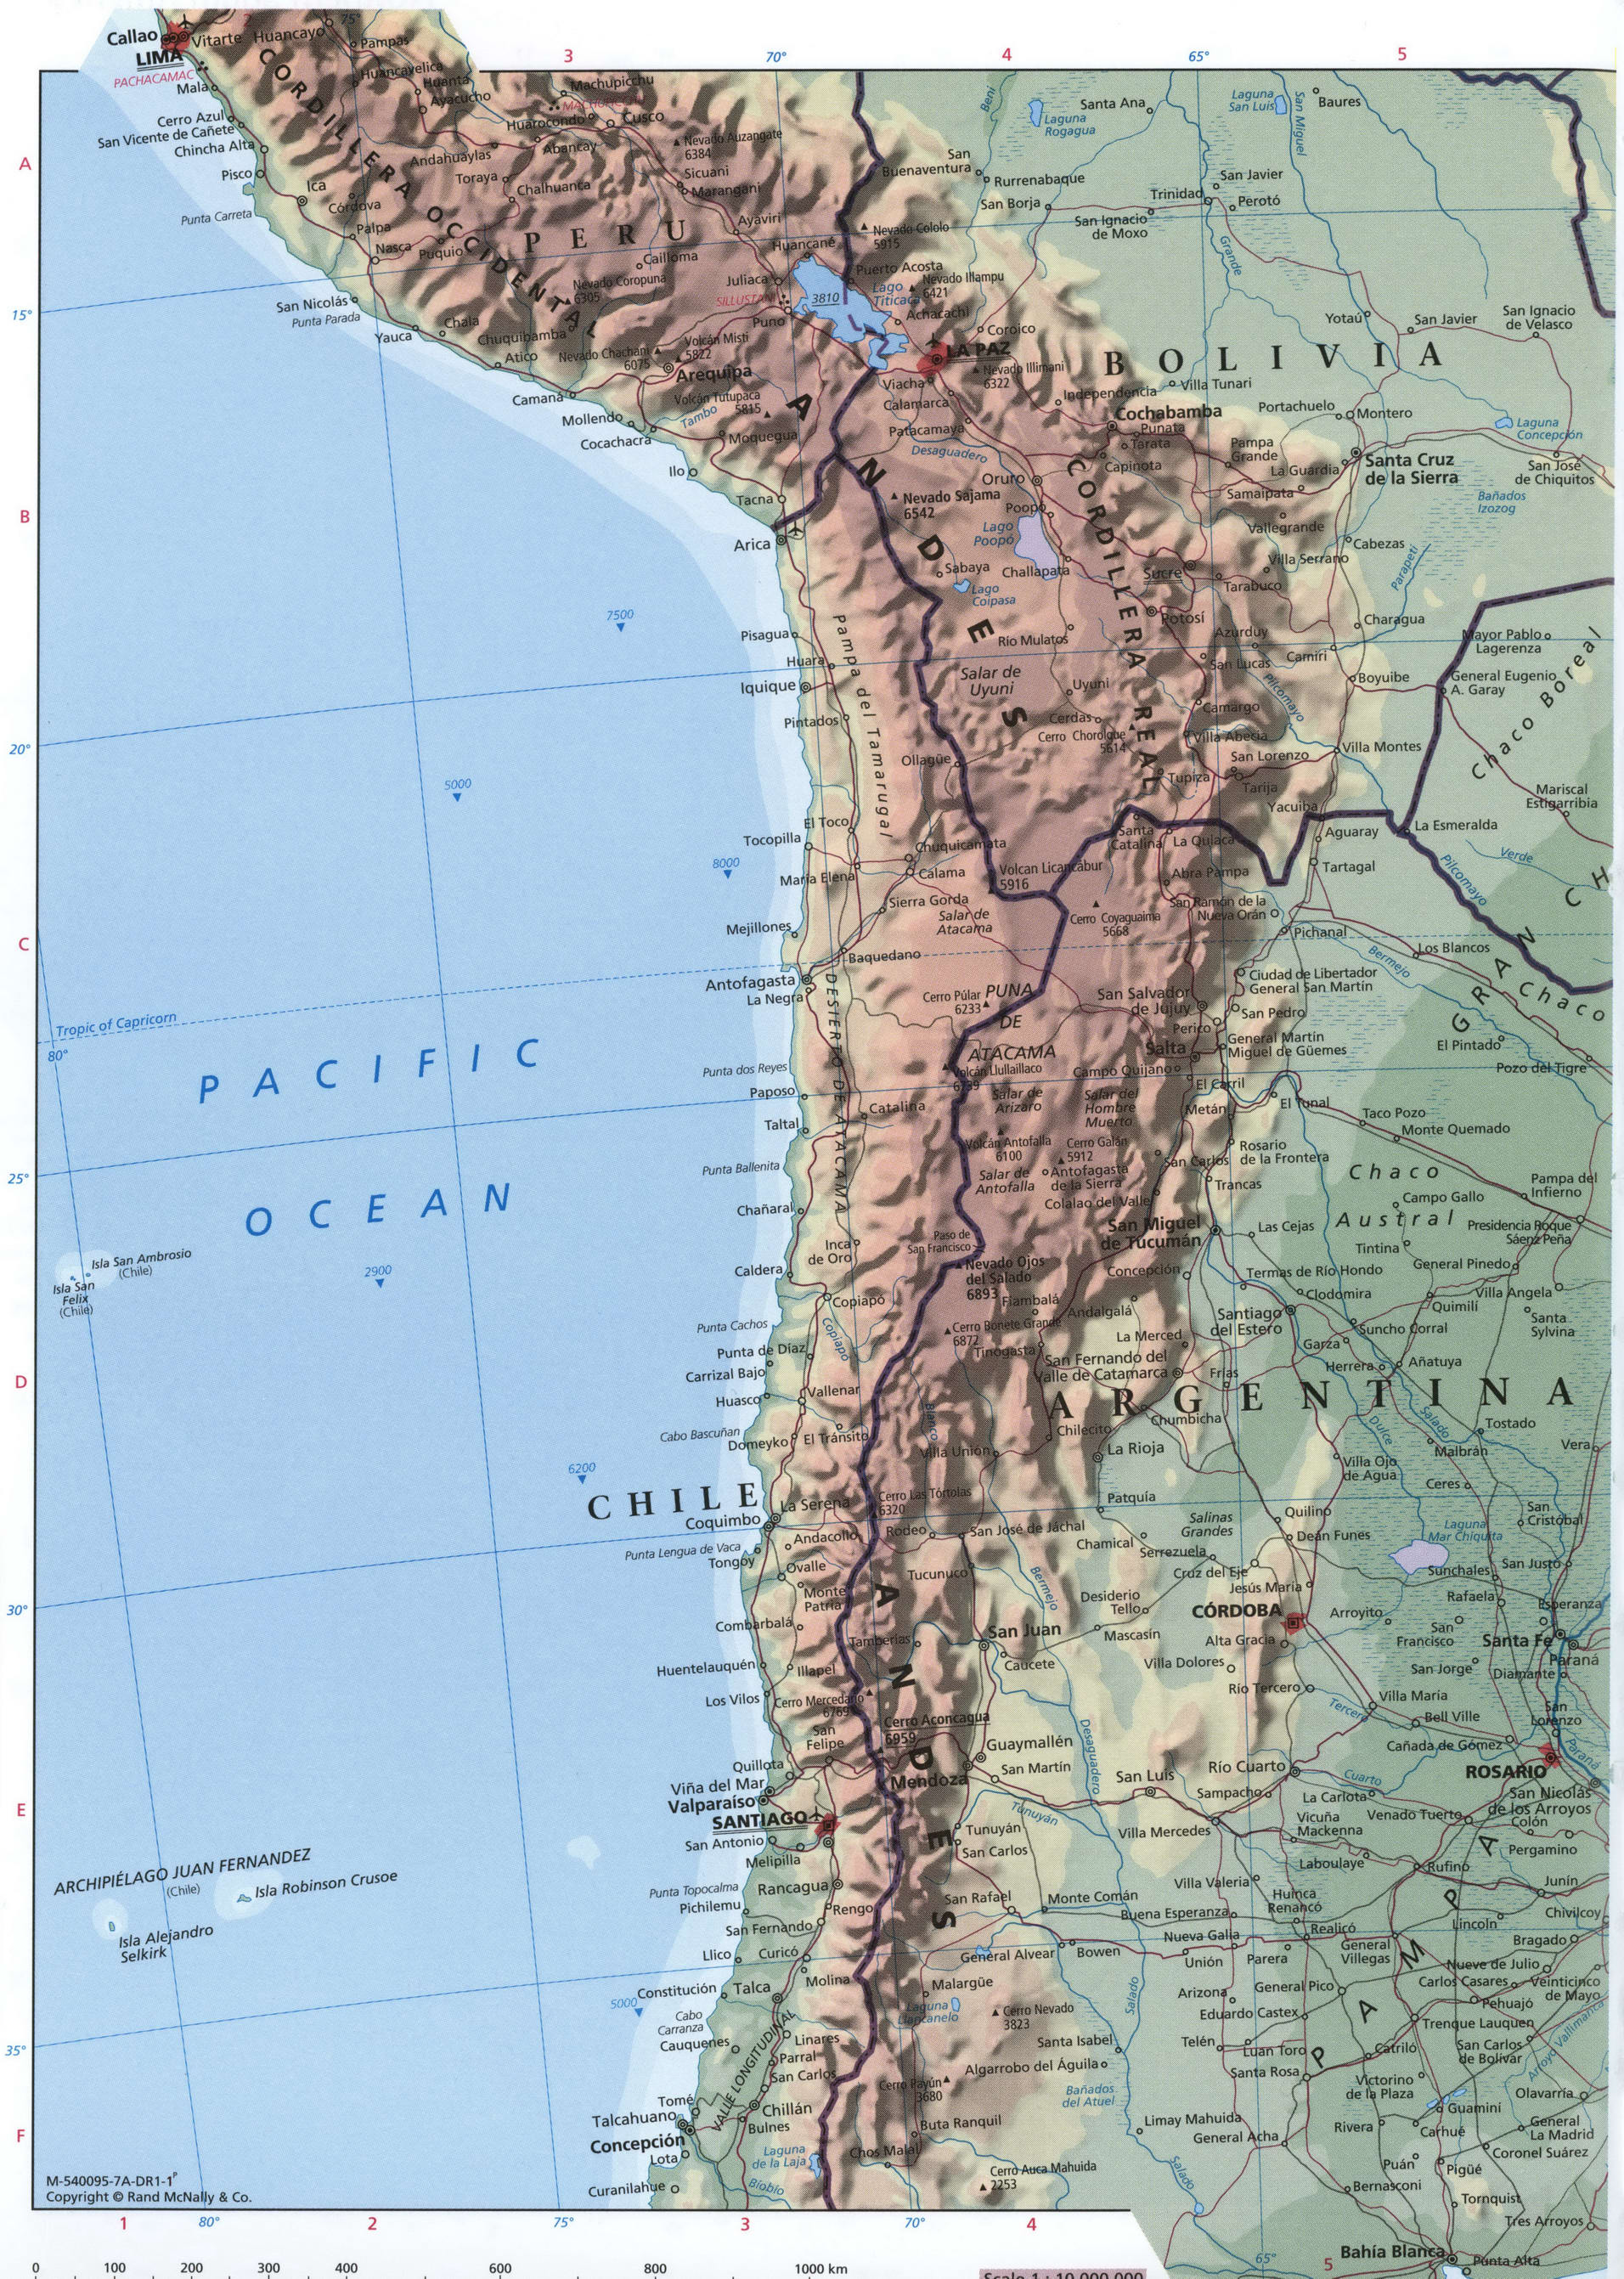 Central South America map - western part